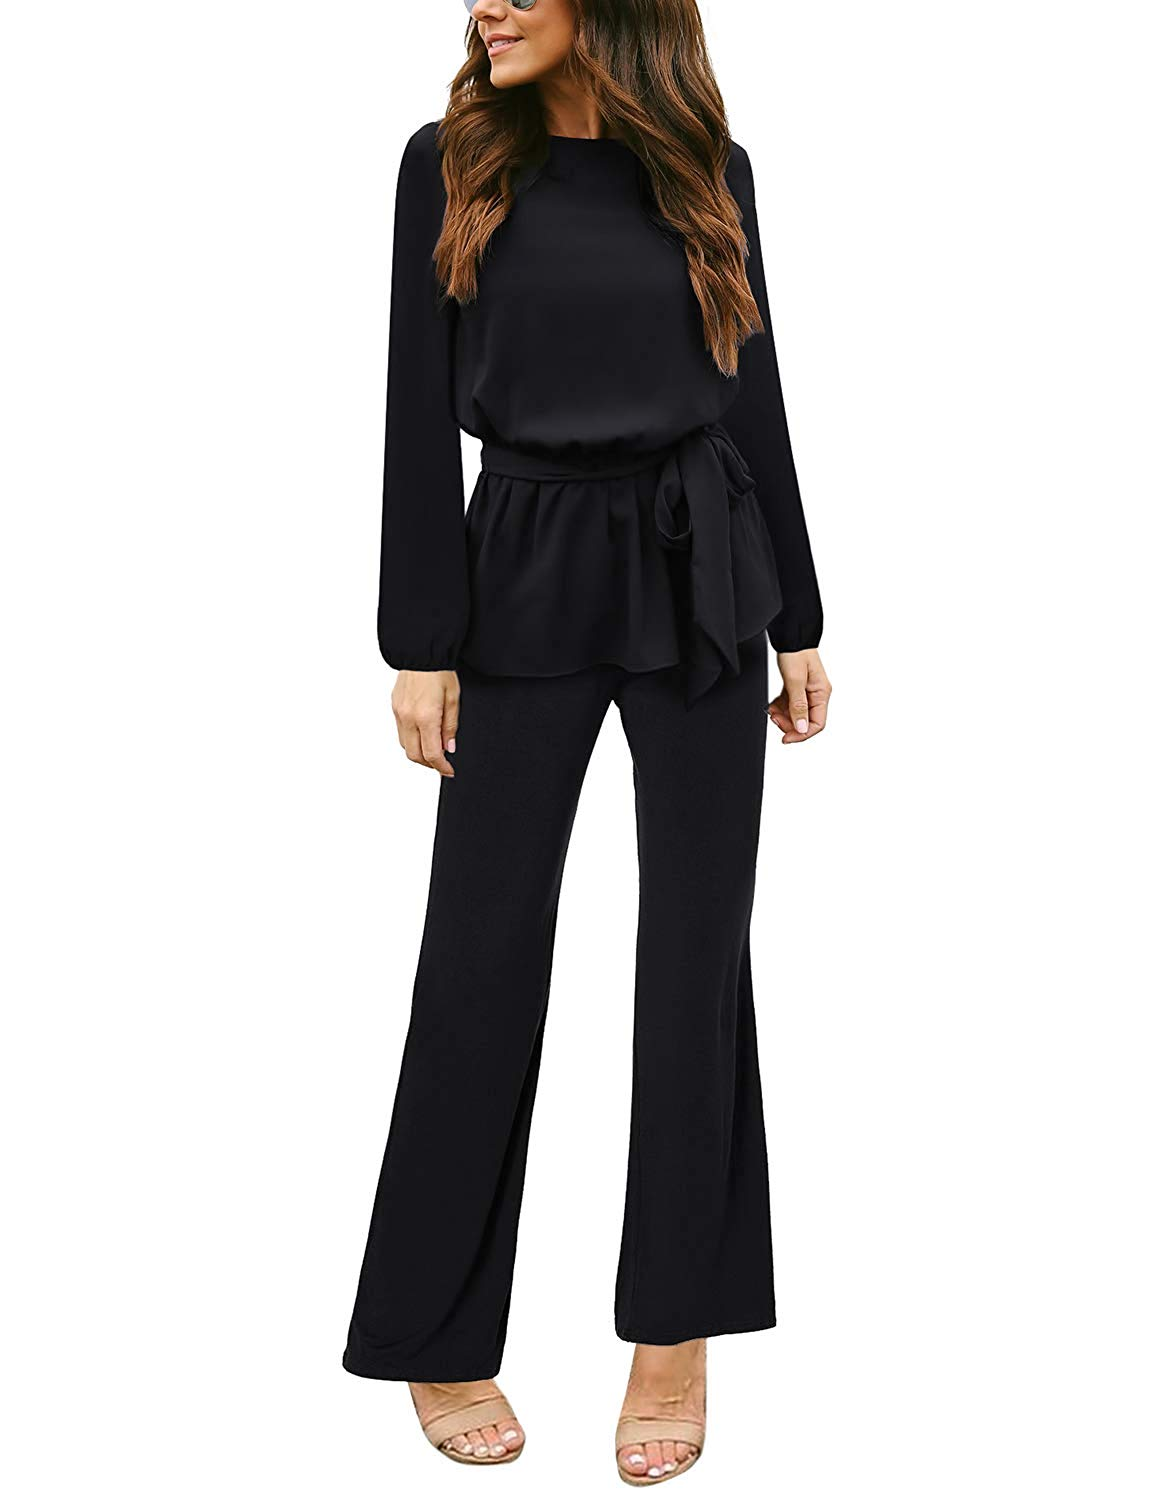 20f258b3105 Get Quotations · Arainlo Womens Fashion Long Sleeve Casual Wide Leg Long Pants  Jumpsuits Rompers Overalls